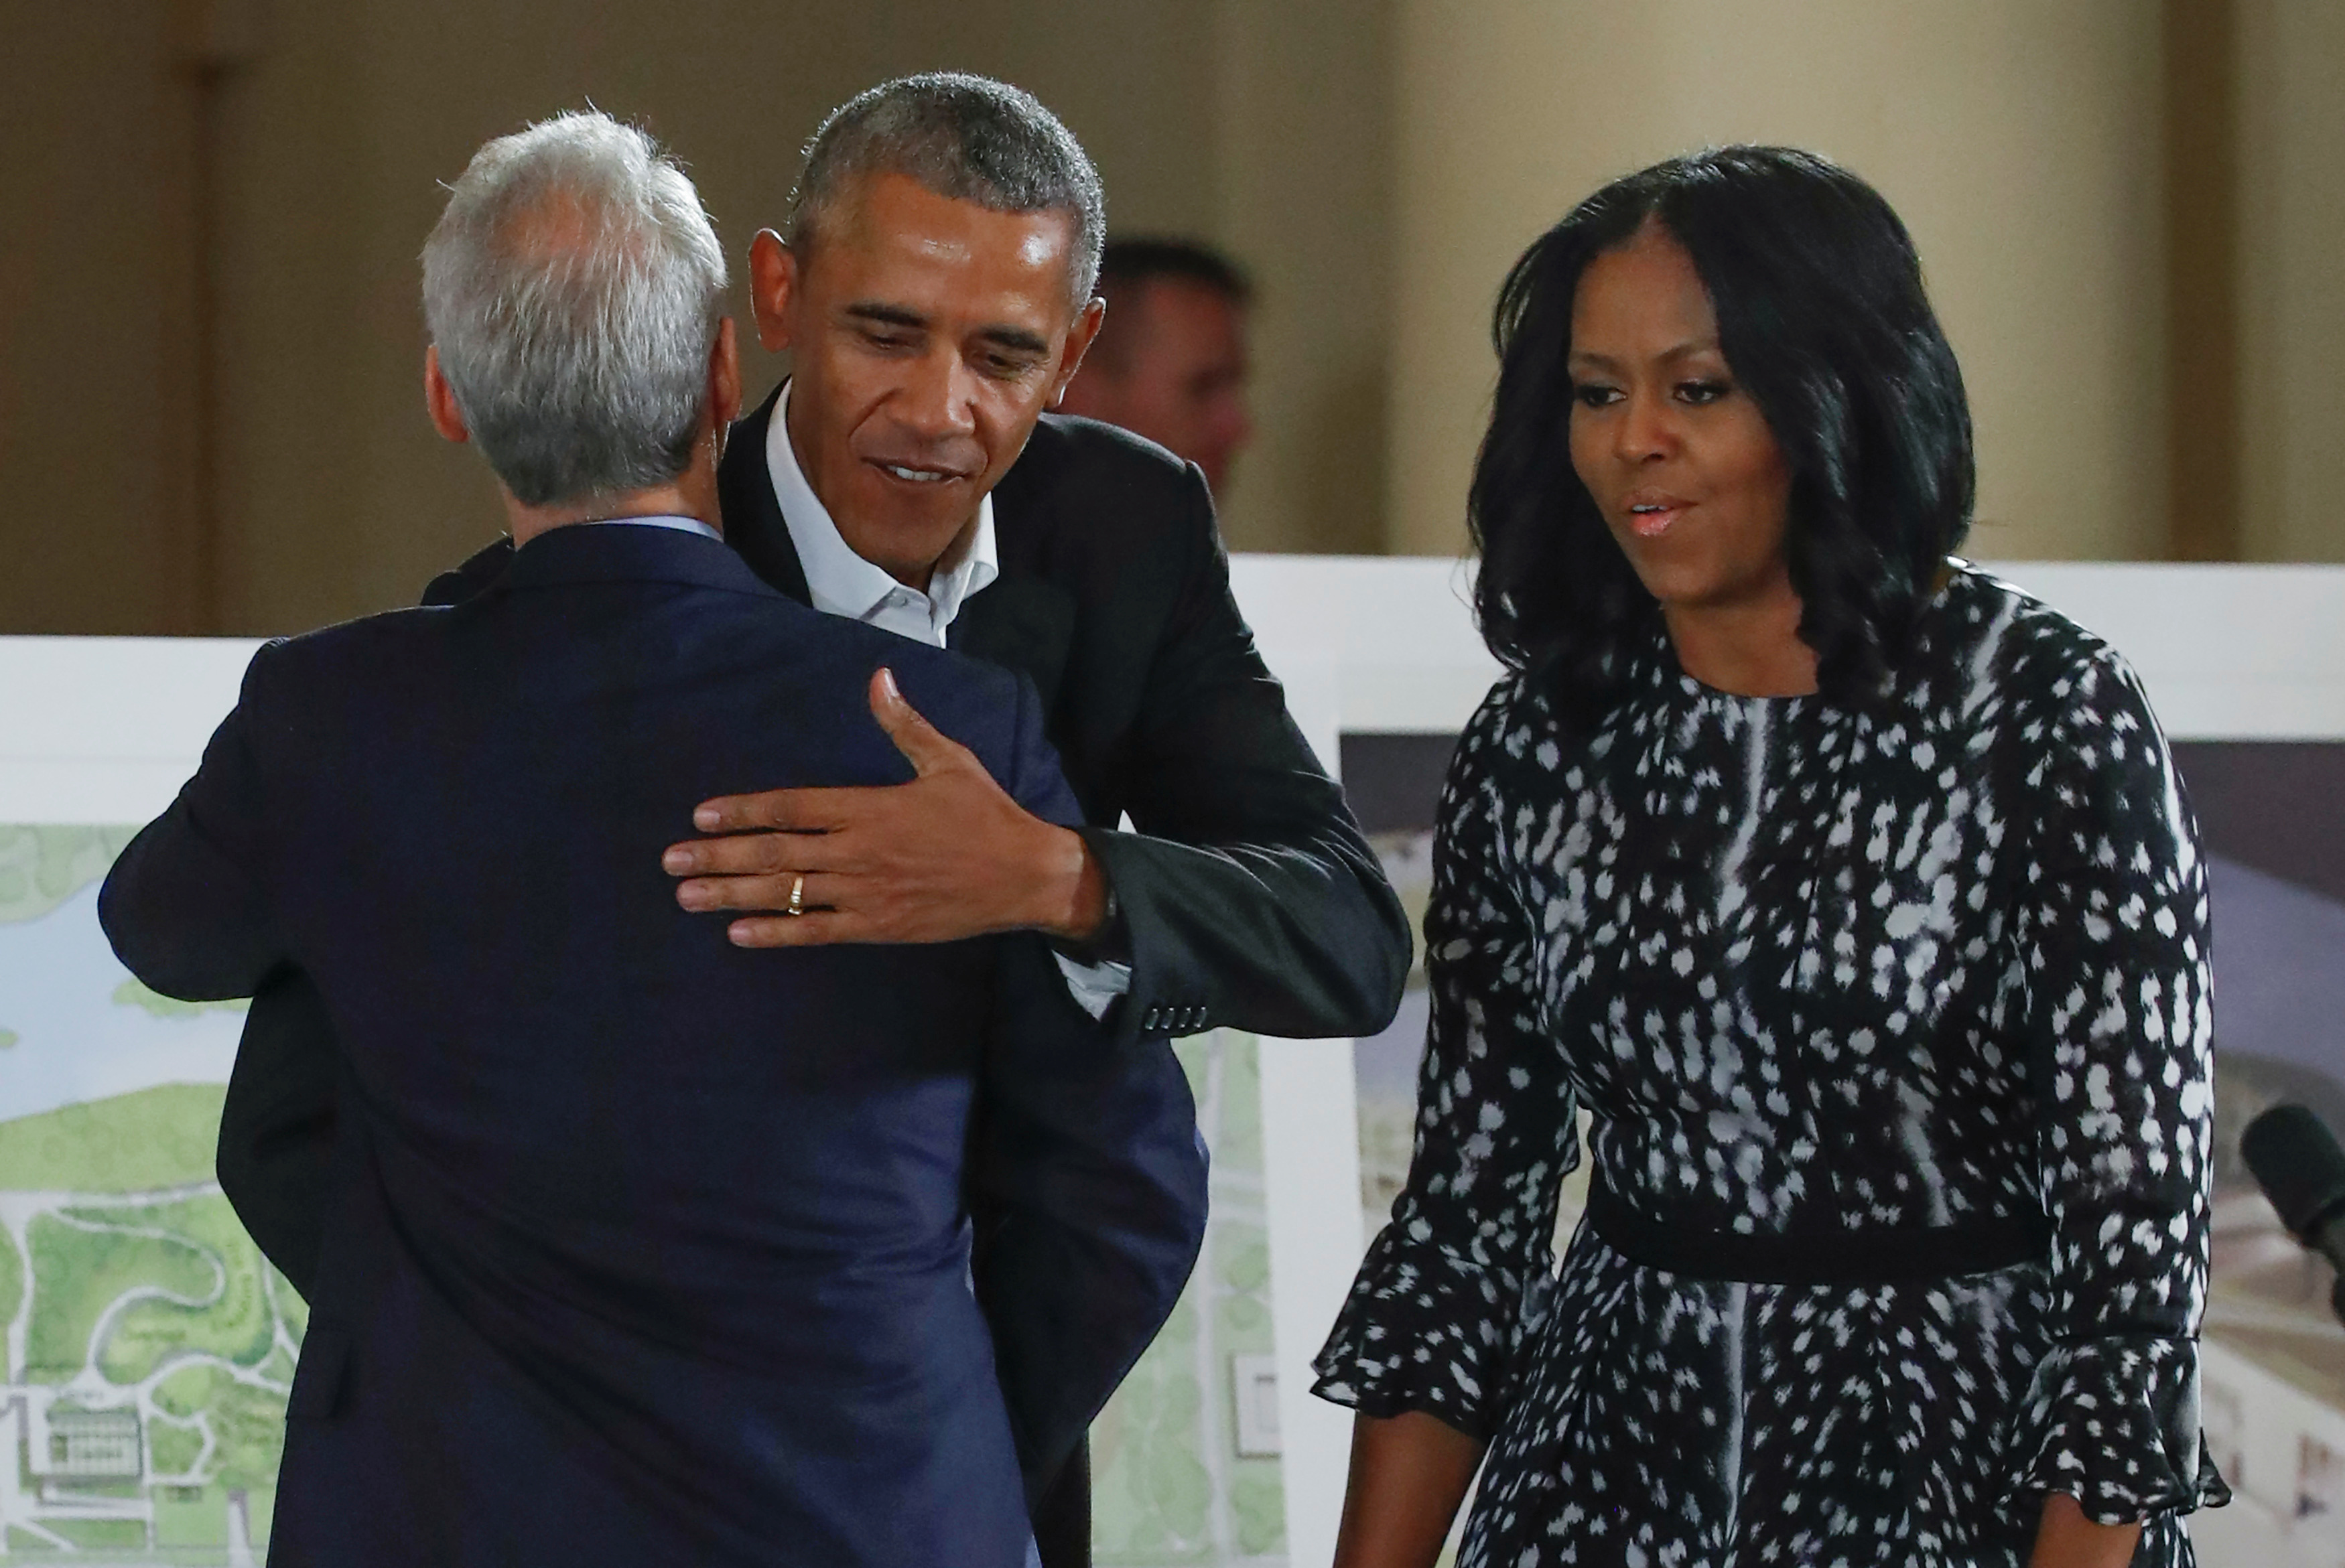 CHICAGO 2017-05-03 Former U.S. President Barack Obama and former first lady Michelle Obama are greeted by City of Chicago Mayor Rahm Emanuel during a community event on the Obama Presidential Centre at the South Shore Cultural Centre in Chicago, Illinois, U.S., May 3, 2017. REUTERS/Kamil Krzaczynski TPX IMAGES OF THE DAY Photo: / REUTERS / TT / kod 72000